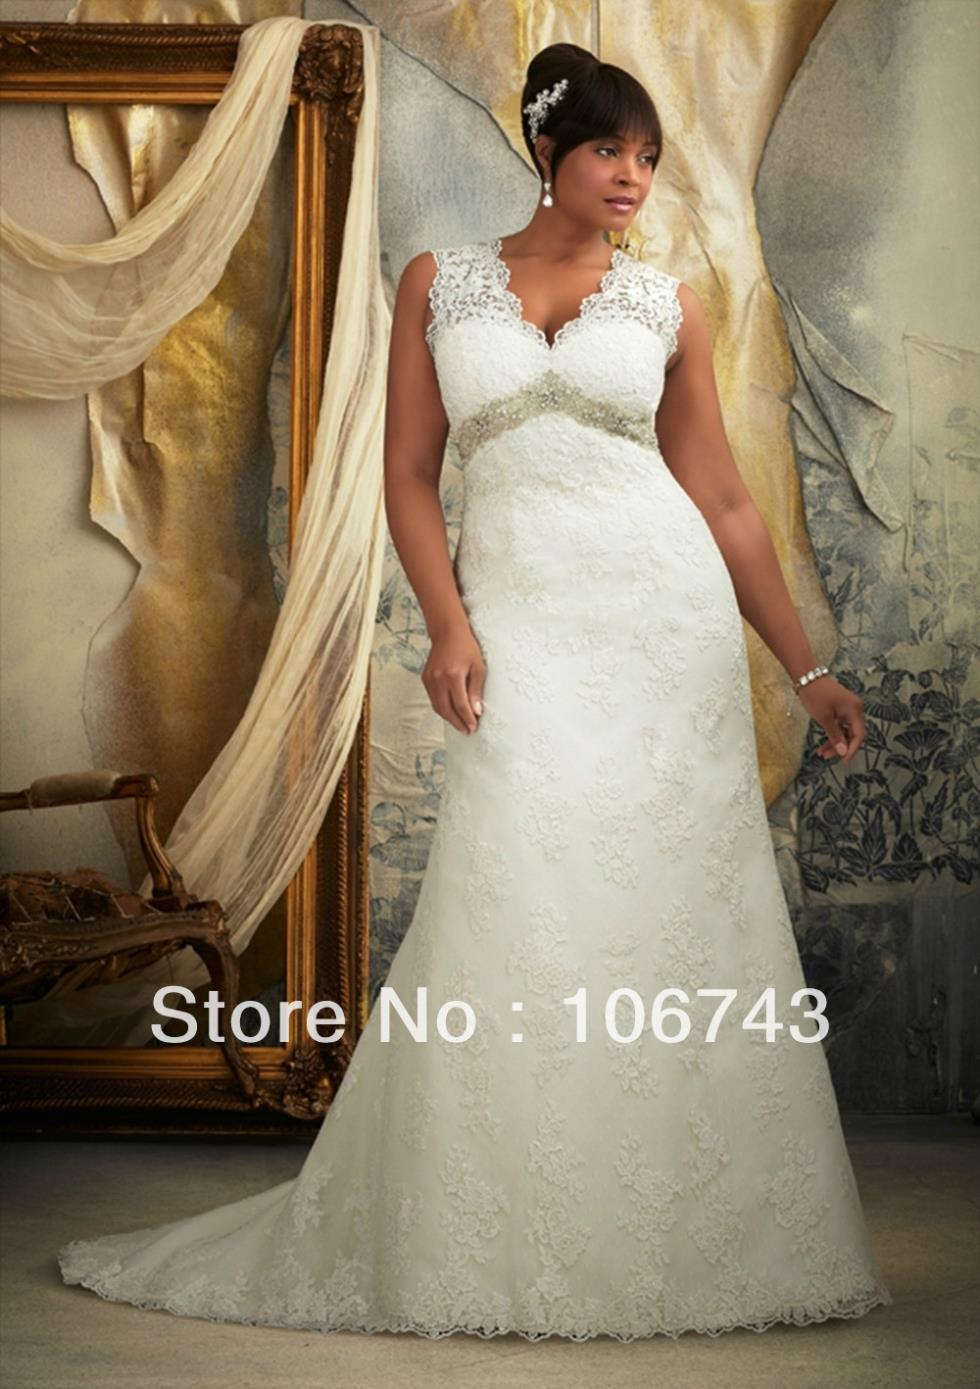 2018 Natural free Shipping Brides Custom Size/color New Bridal gown Fatty Plus Lace Off The Shoulder mother of the bride dresses